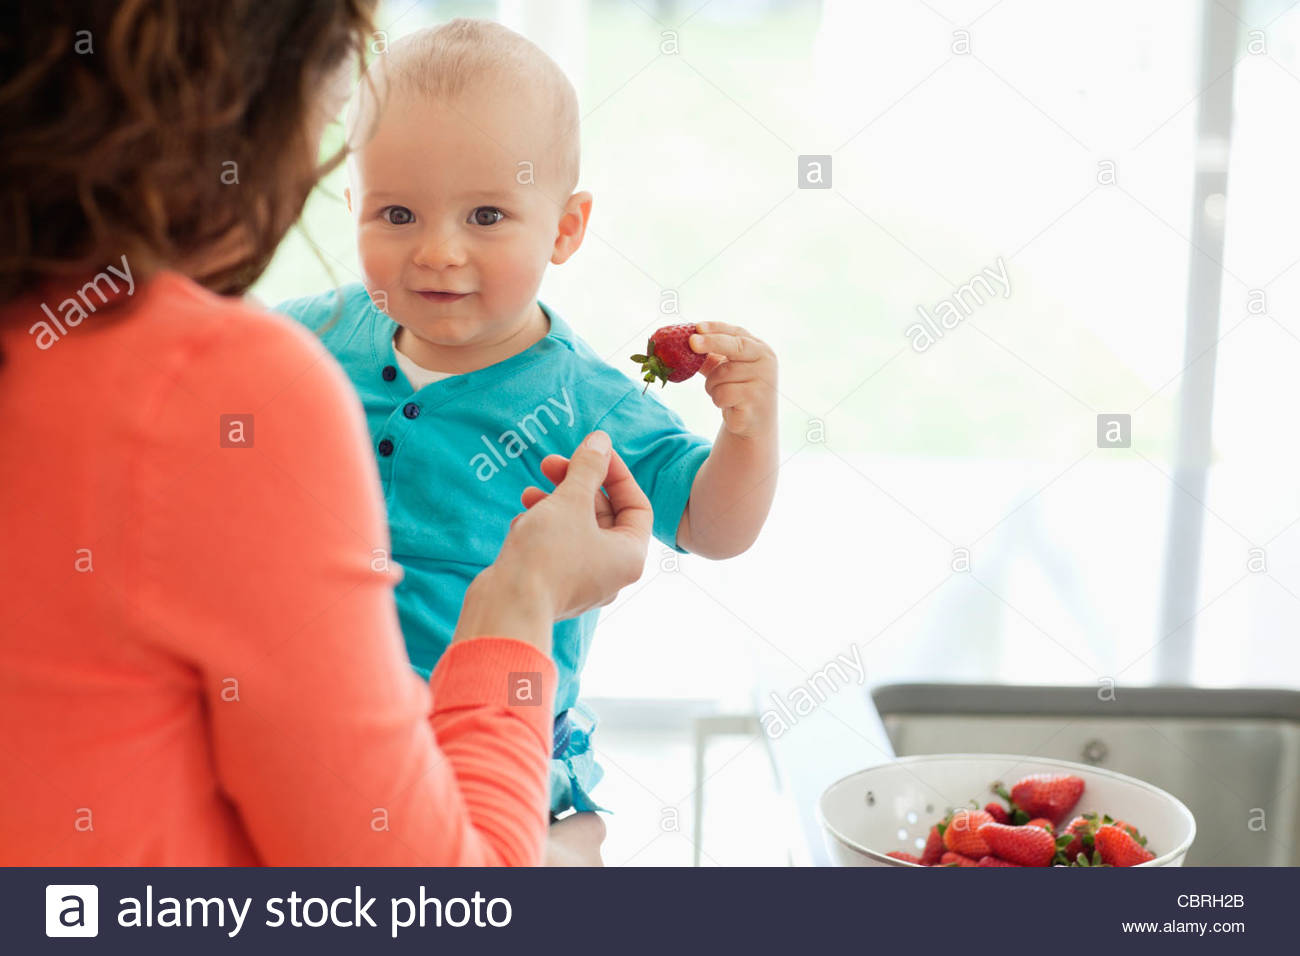 Mother giving baby strawberry - Stock Image